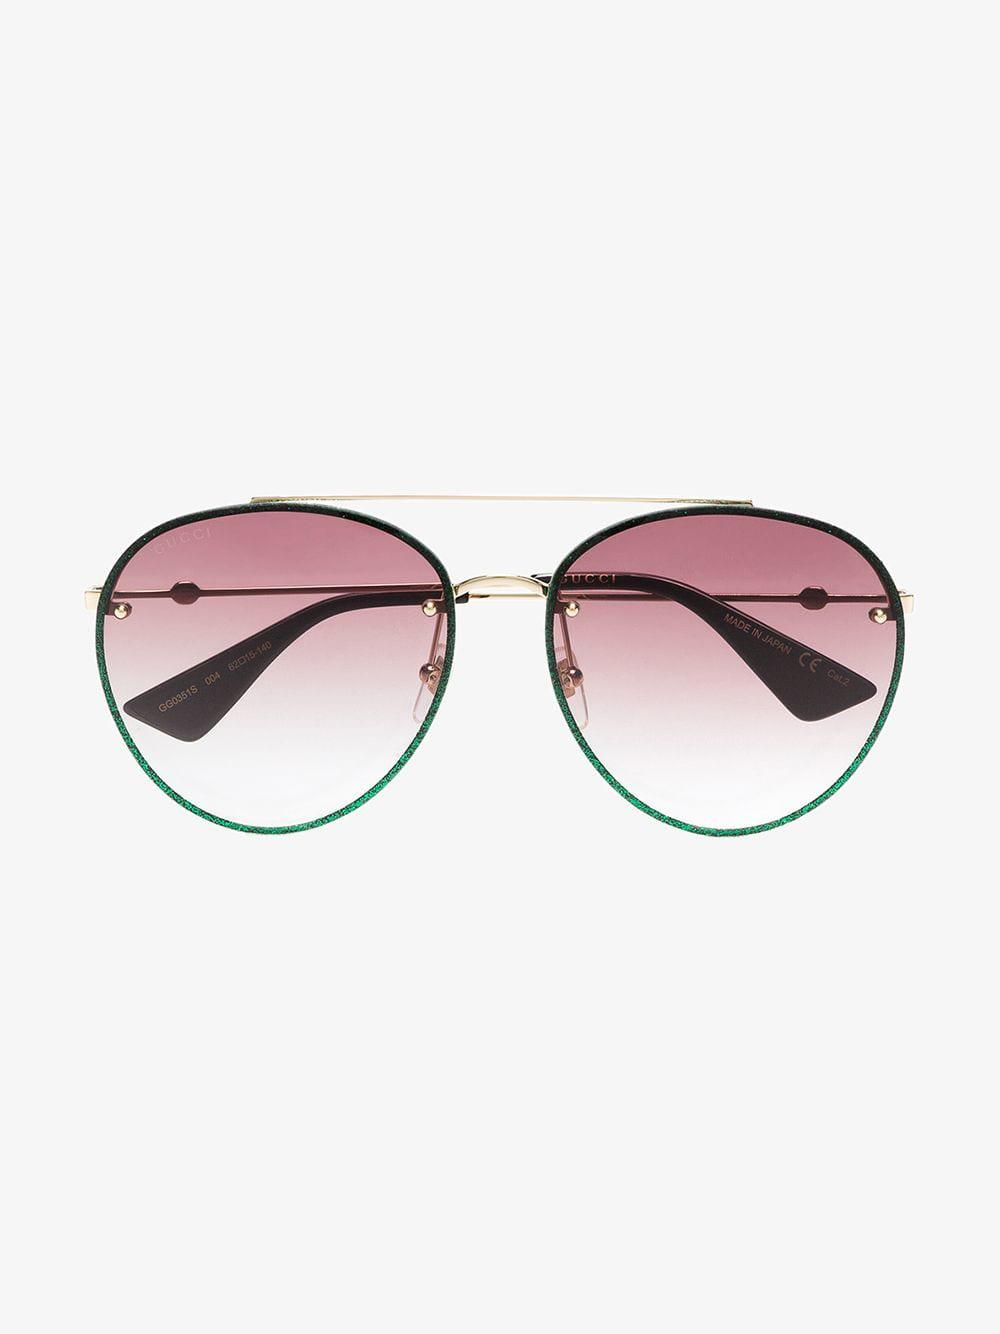 3cd1bb176b Gucci - Metallic Green Glitter Aviator Sunglasses - Lyst. View fullscreen